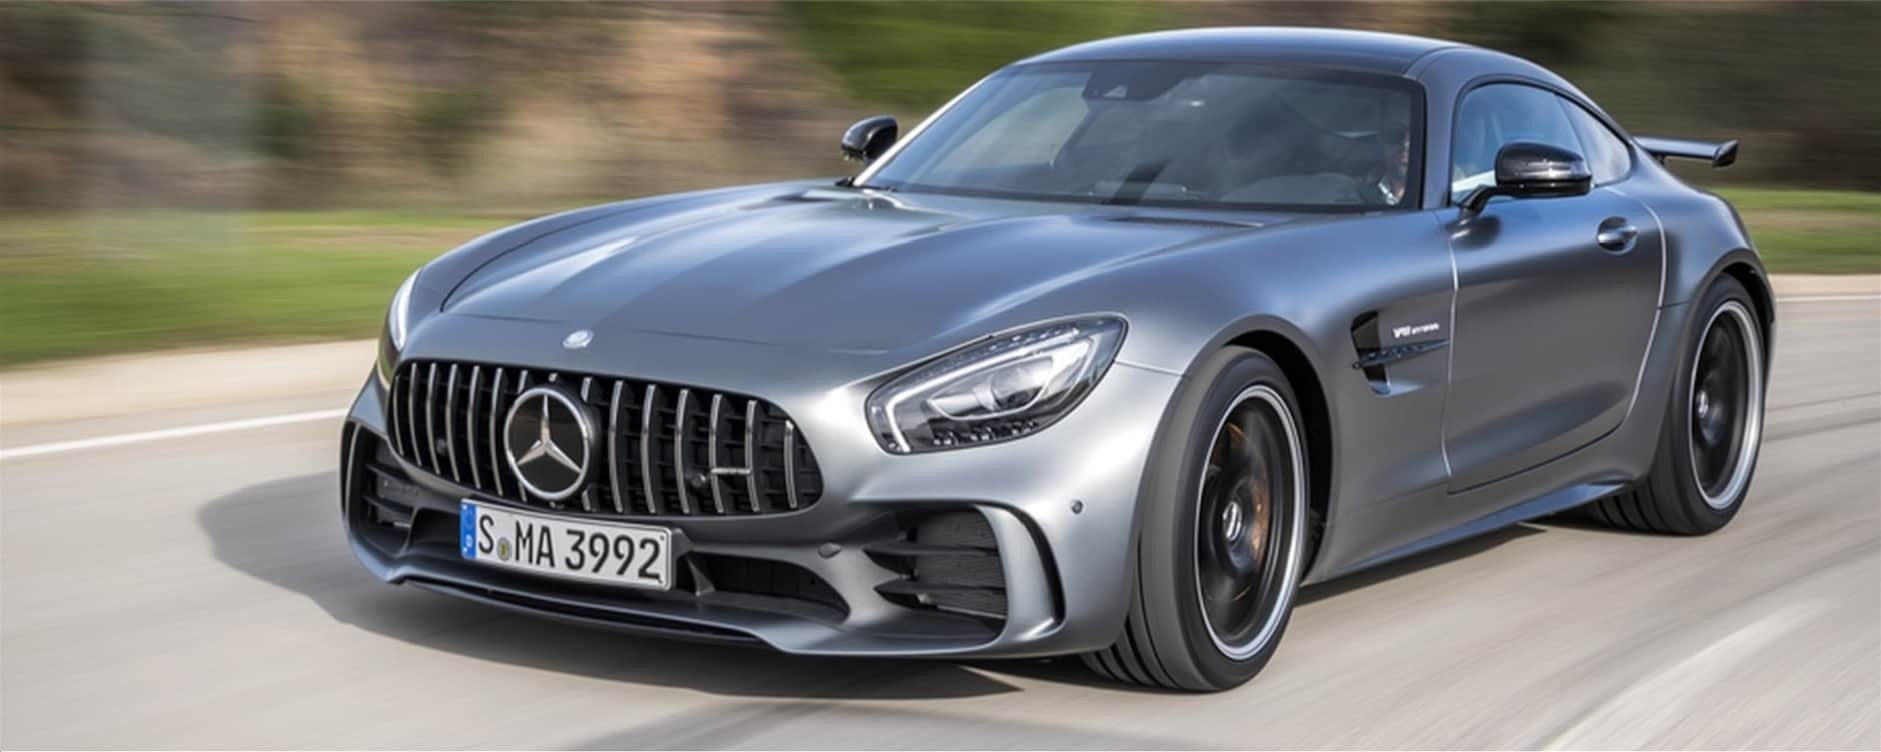 Mercedes benz releases pricing for new amg model mercedes benz of the pricing for the 2018 amg gt r coupe was recently announced by mercedes benz usa arriving in us dealerships this summer the amg gt r will start at altavistaventures Gallery